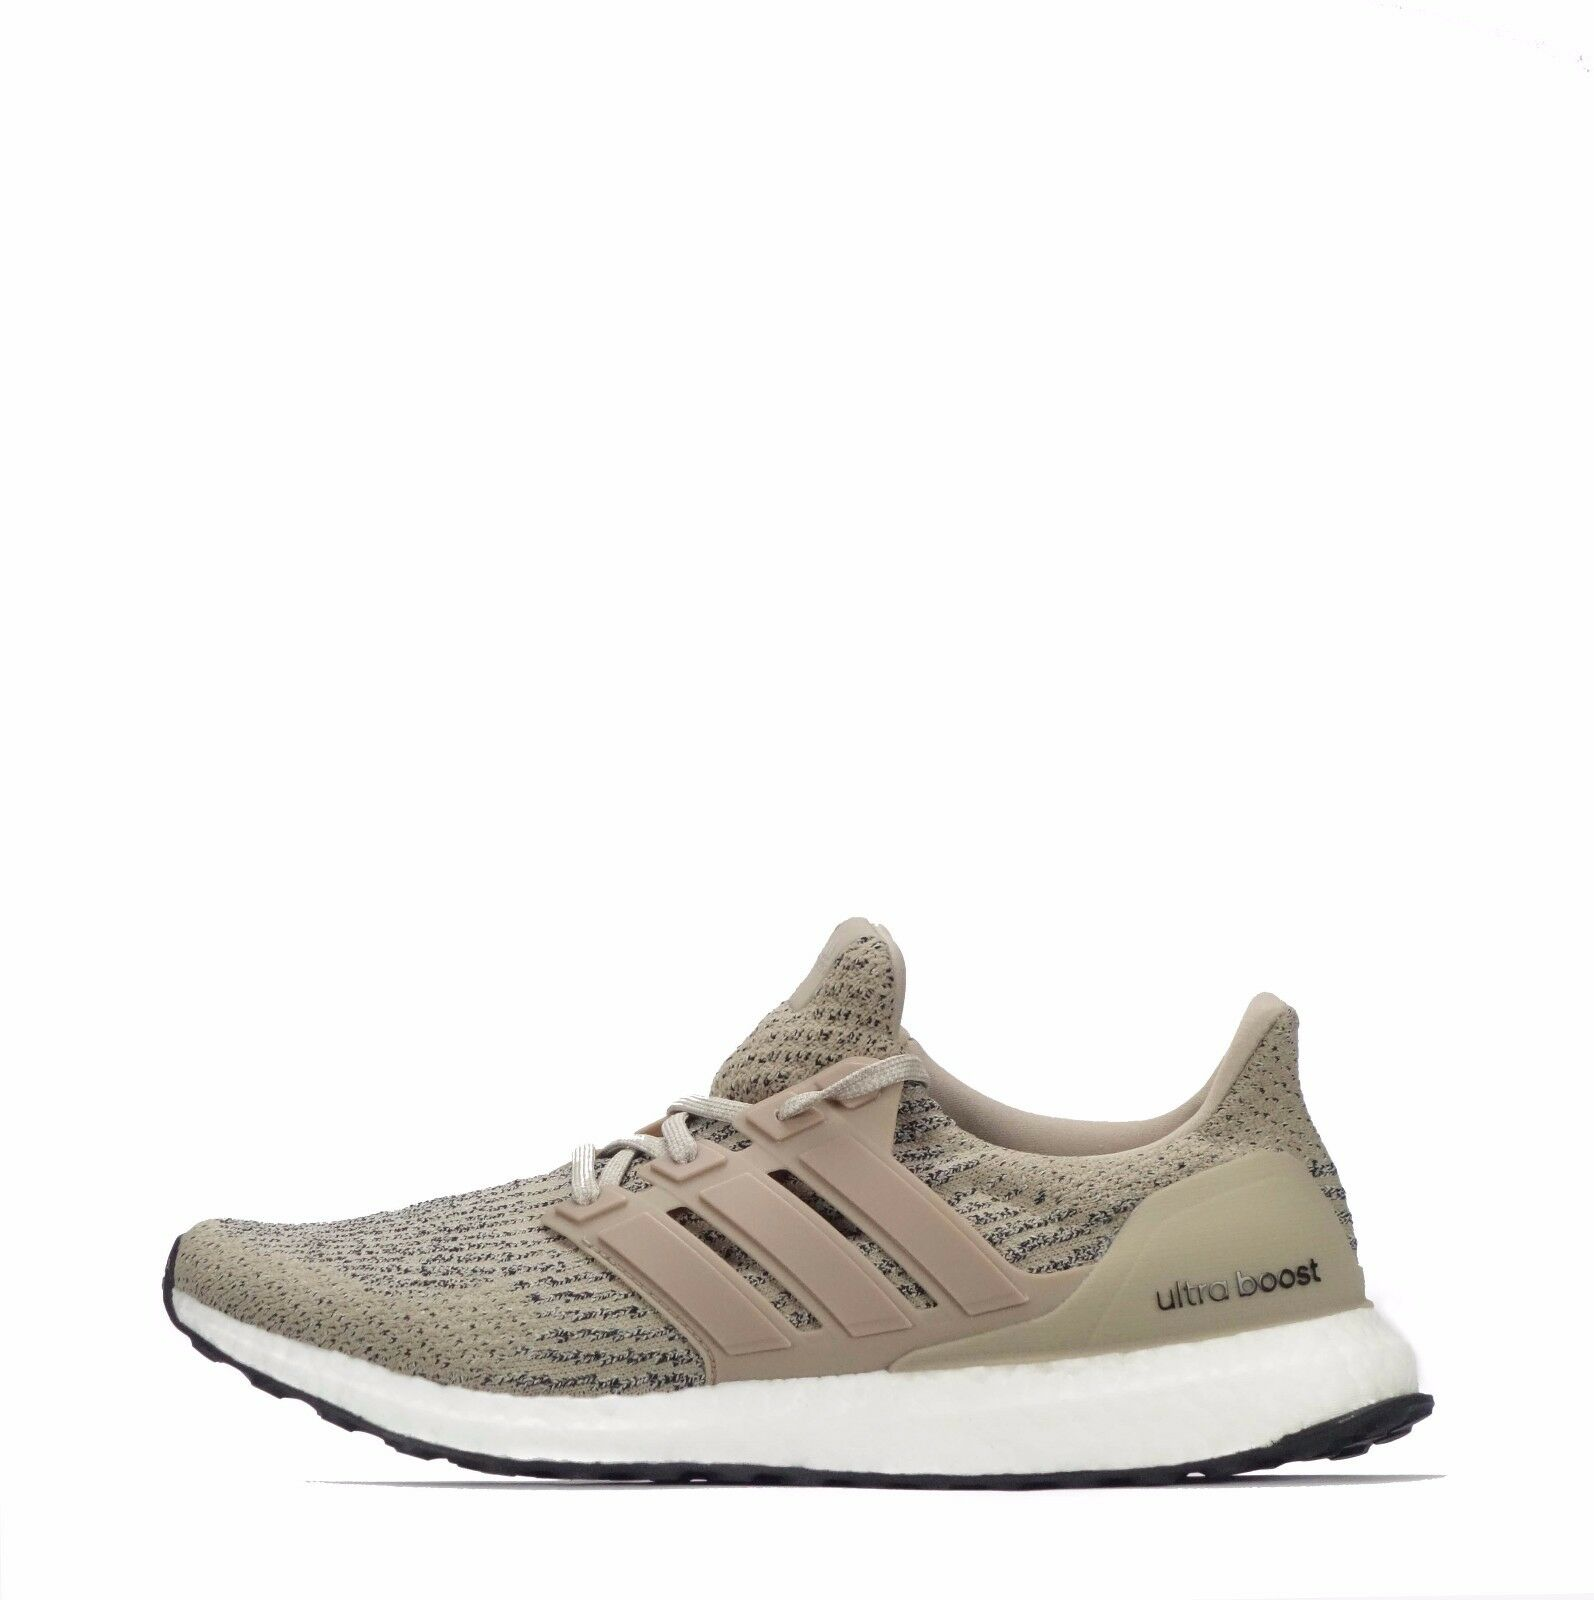 adidas Ultra Boost Men's Running Lace Up Schuhes Trace Khaki/Braun